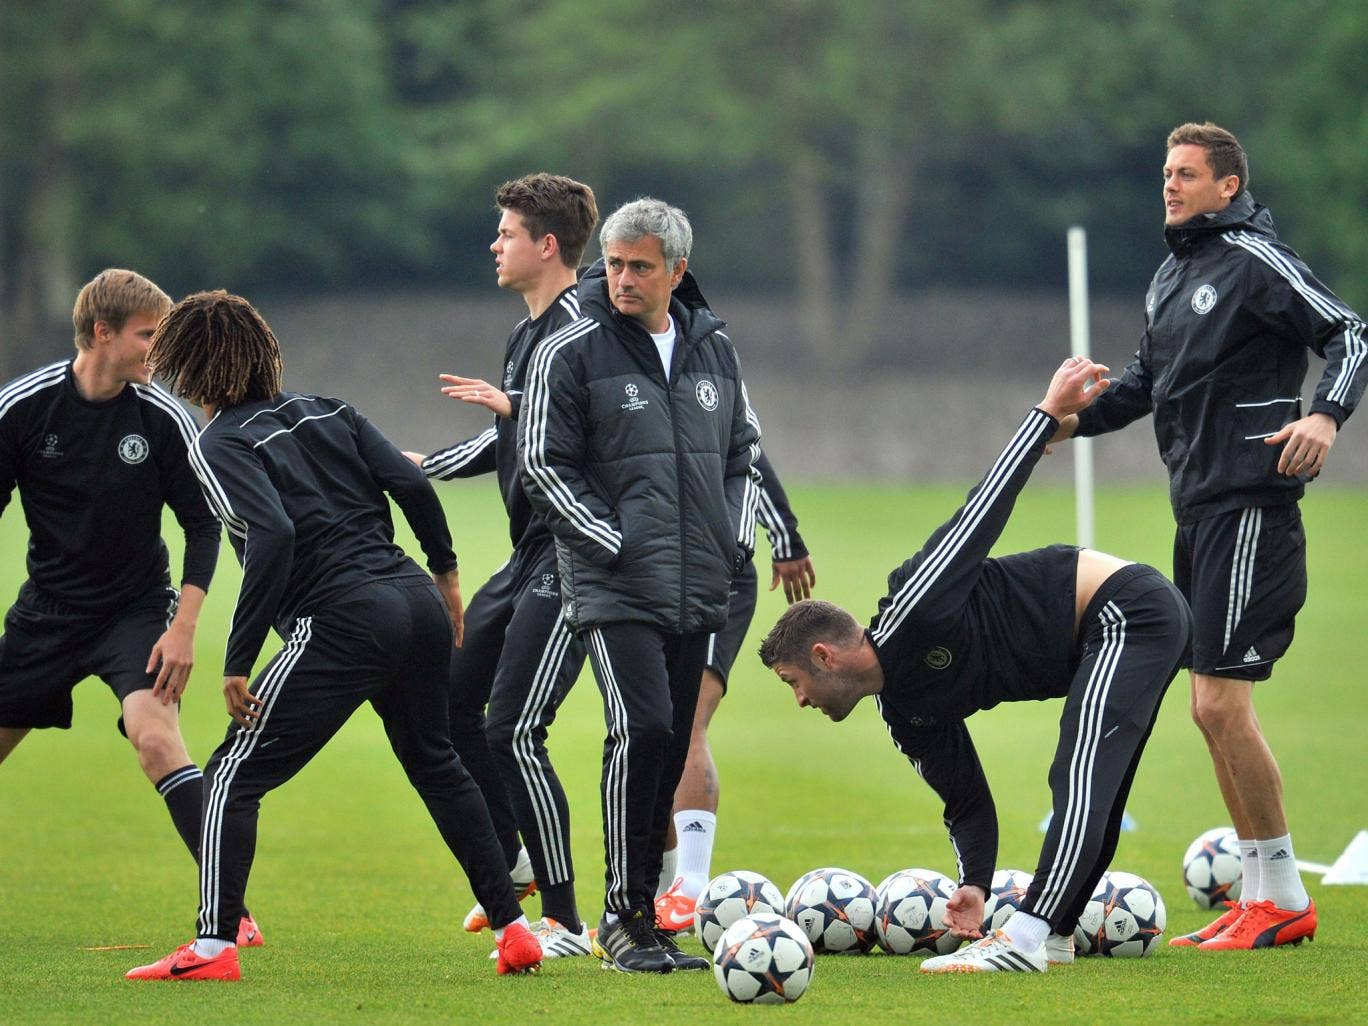 Jose Mourinho will be going all out to deliver a title to Chelsea in 2014-15